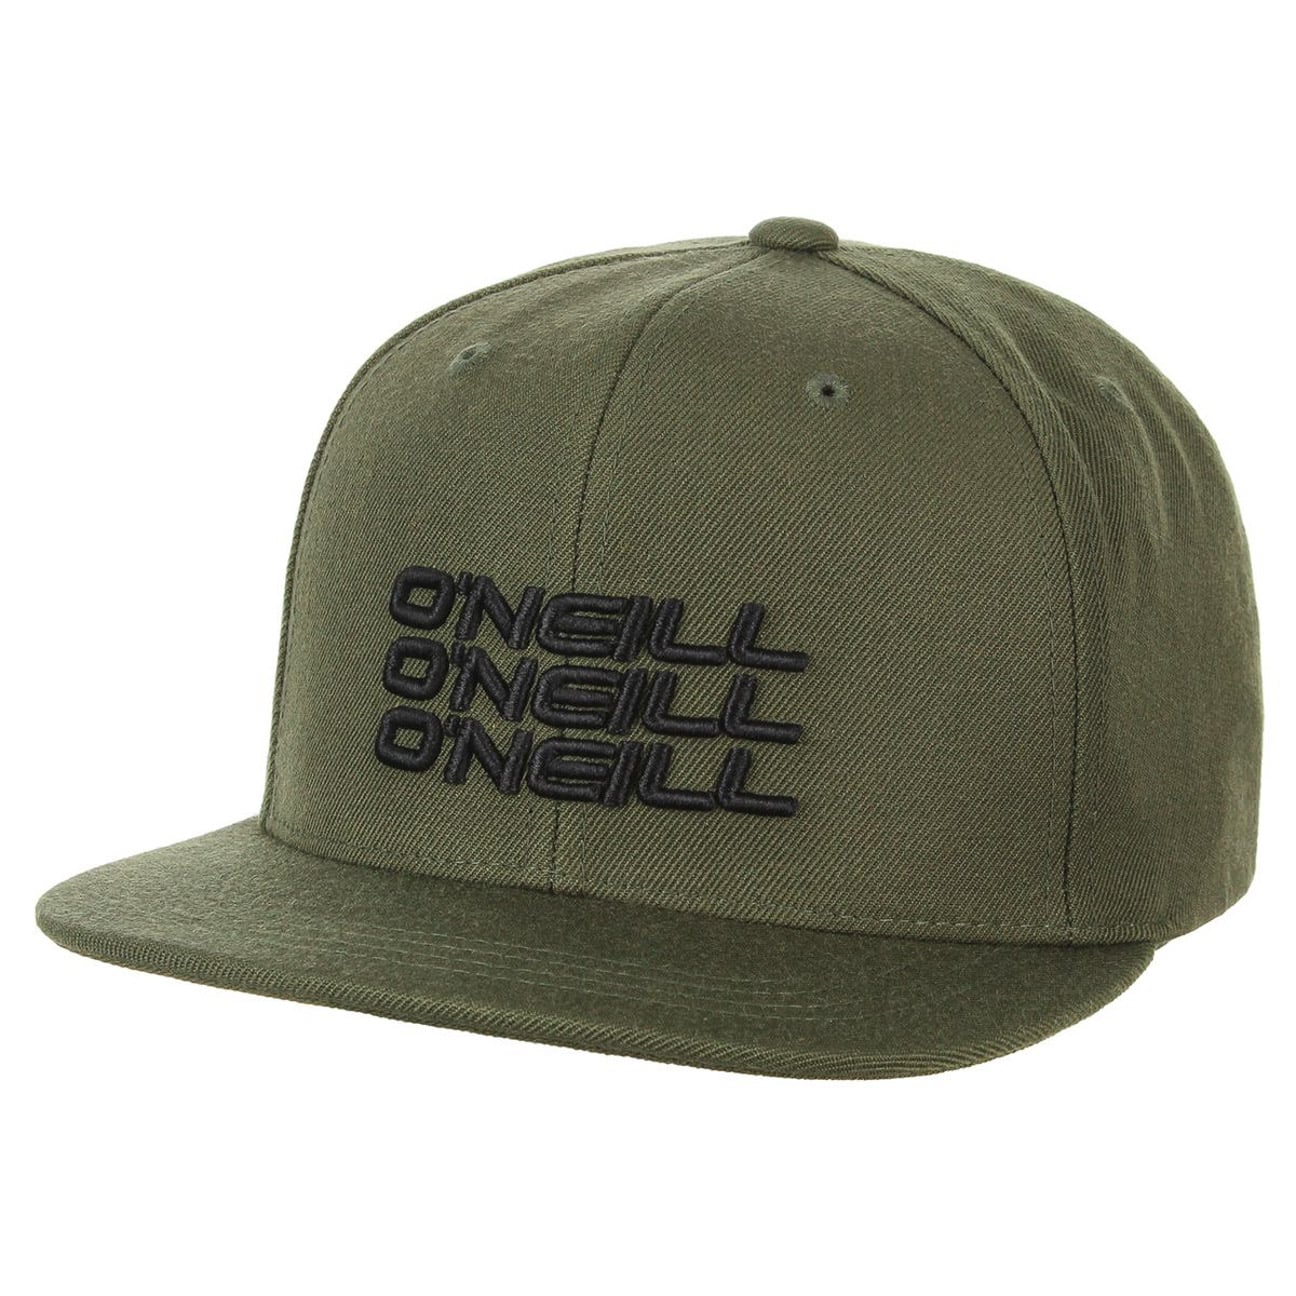 ac stacked snapback cap by o neill eur 29 95 hats. Black Bedroom Furniture Sets. Home Design Ideas